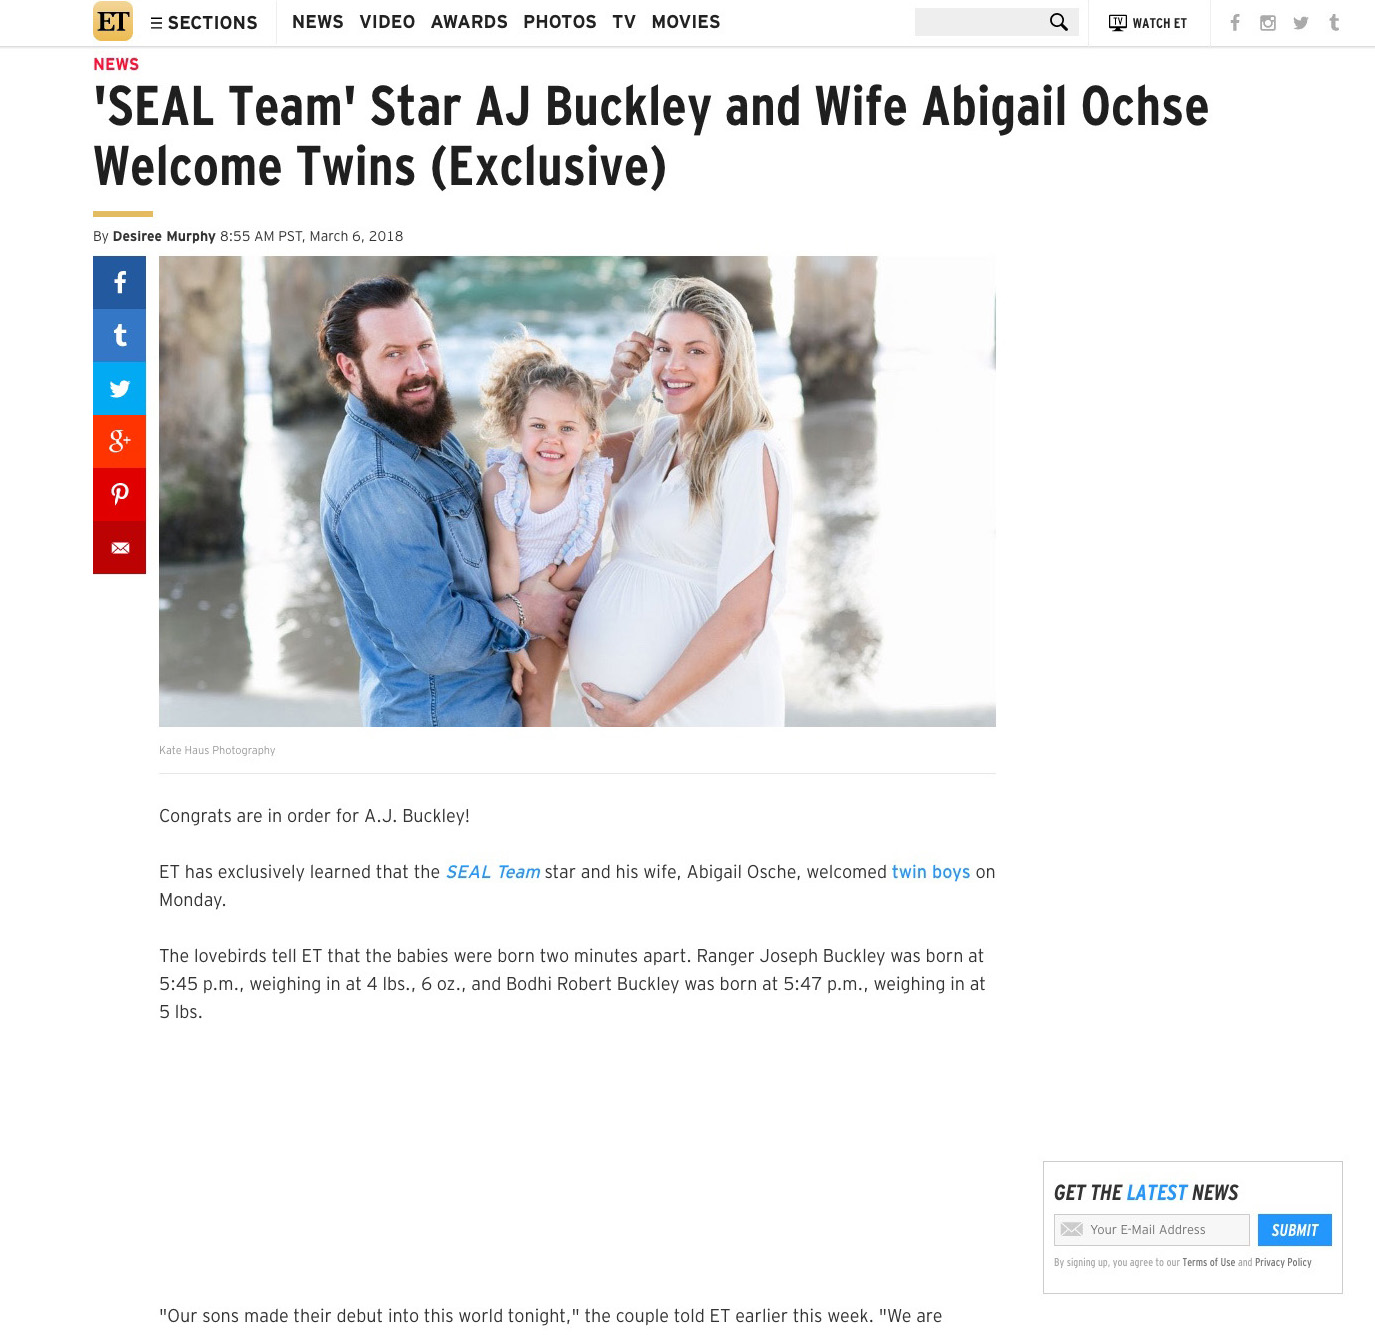 Entertainment Tonight: SEAL Team Star AJ Buckley and Wife Welcome Twins!